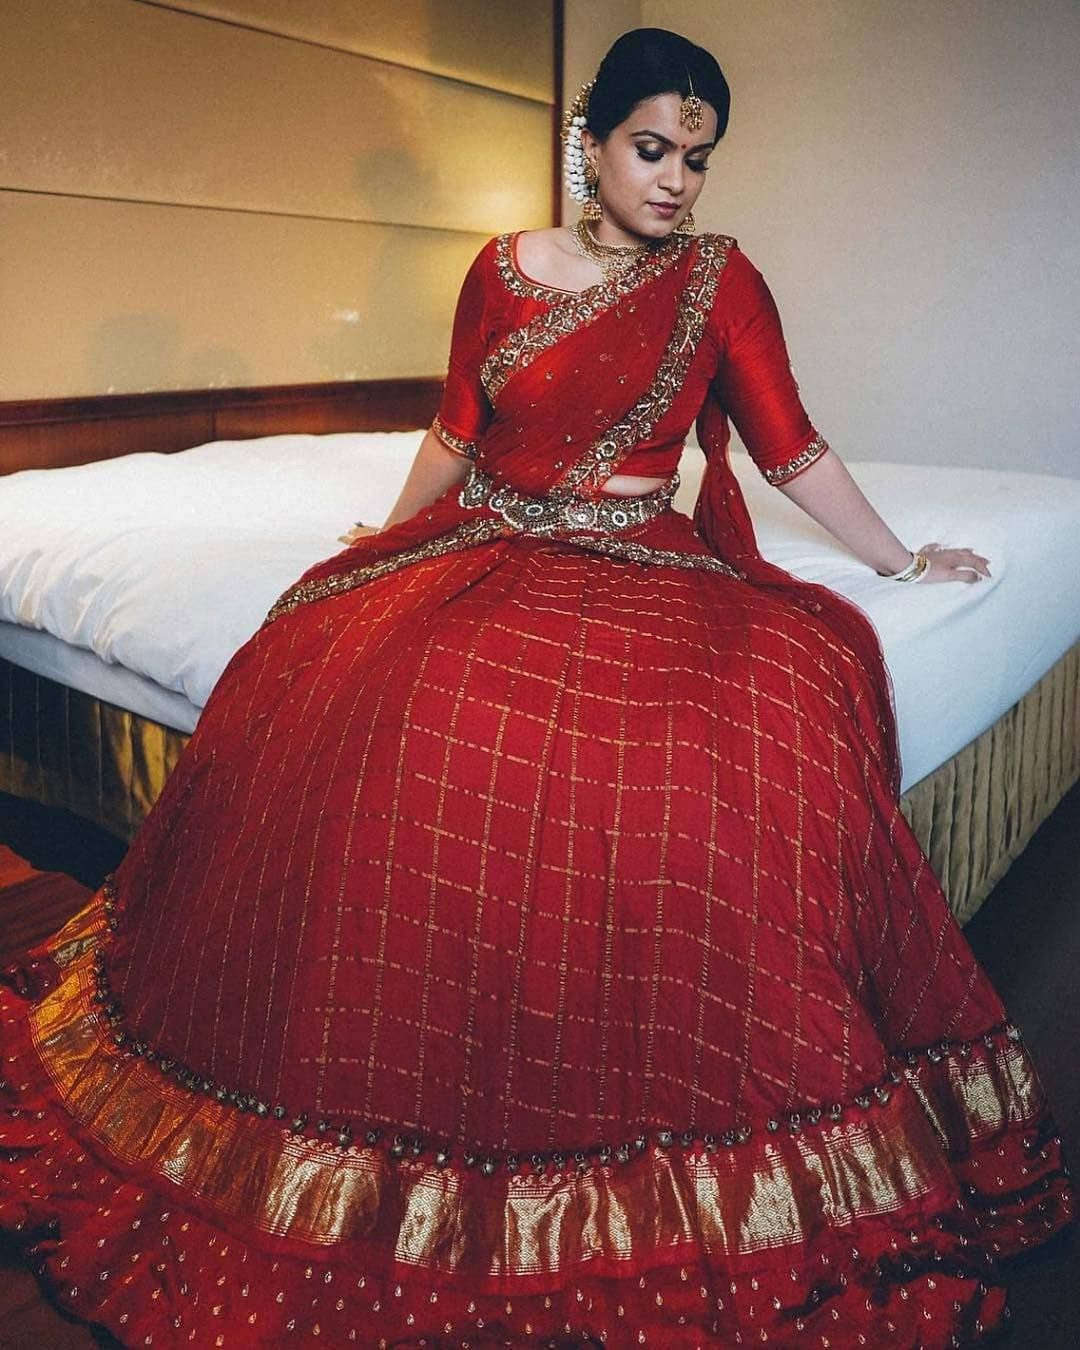 Honest Indian Bridal Saree Latest Collection Design Pakistani Lehenga Black Sari Blouse New Varieties Are Introduced One After Another Other Women's Clothing Clothing, Shoes & Accessories